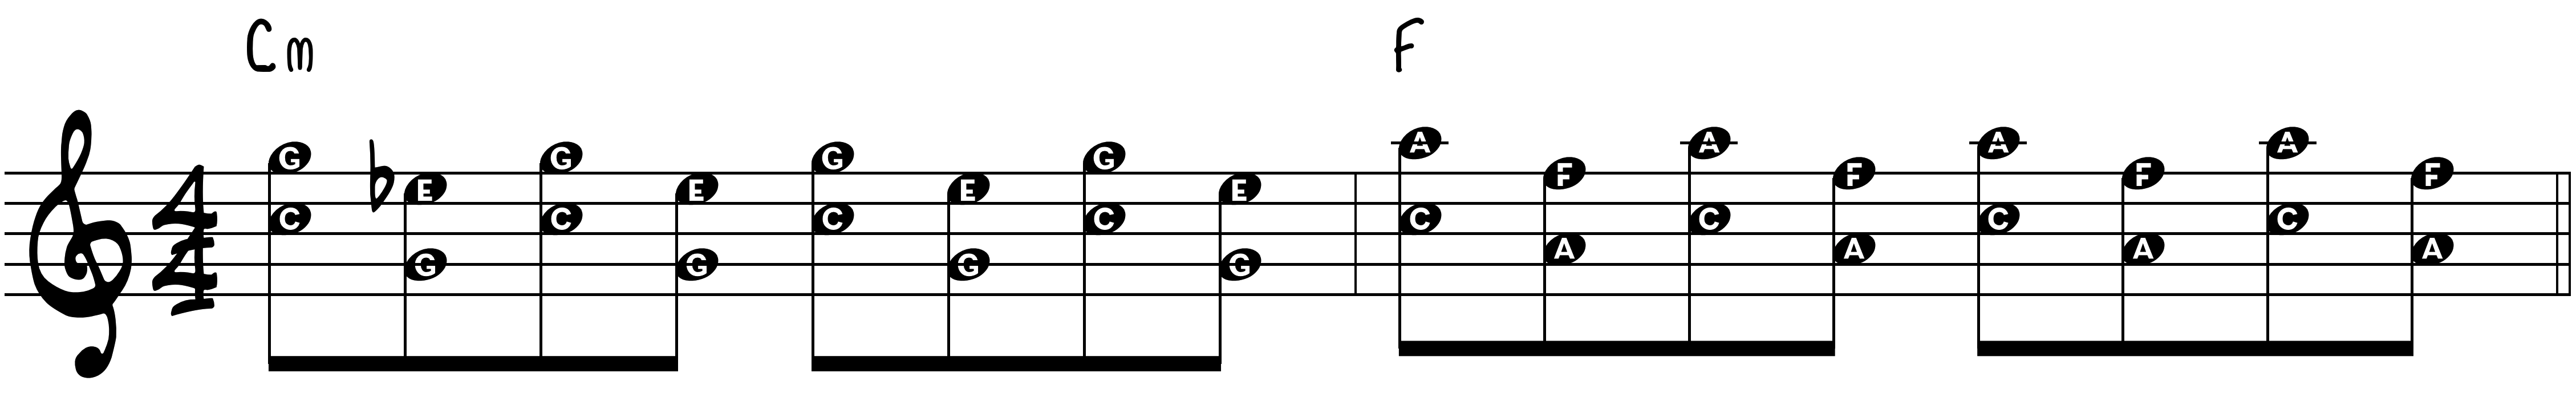 Right Hand Interval Rocking C minor to F Major